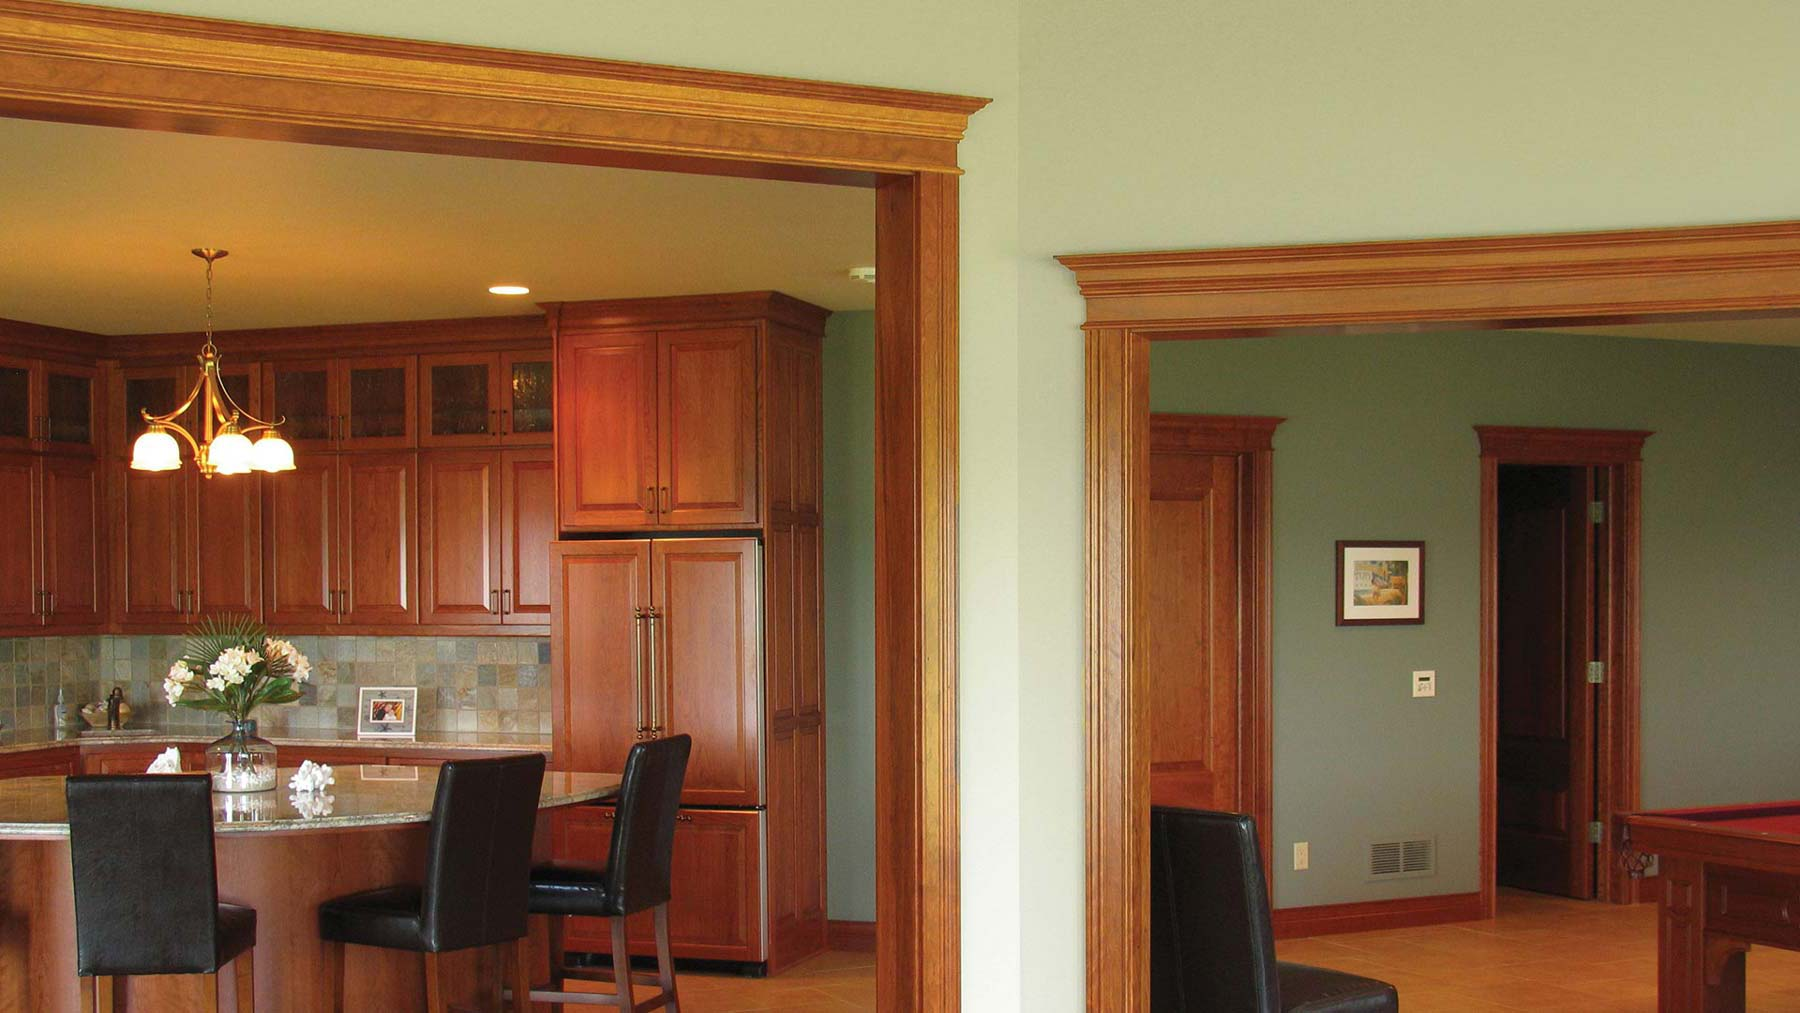 Green and gold earth-toned rooms with hardwood door frames and window casings